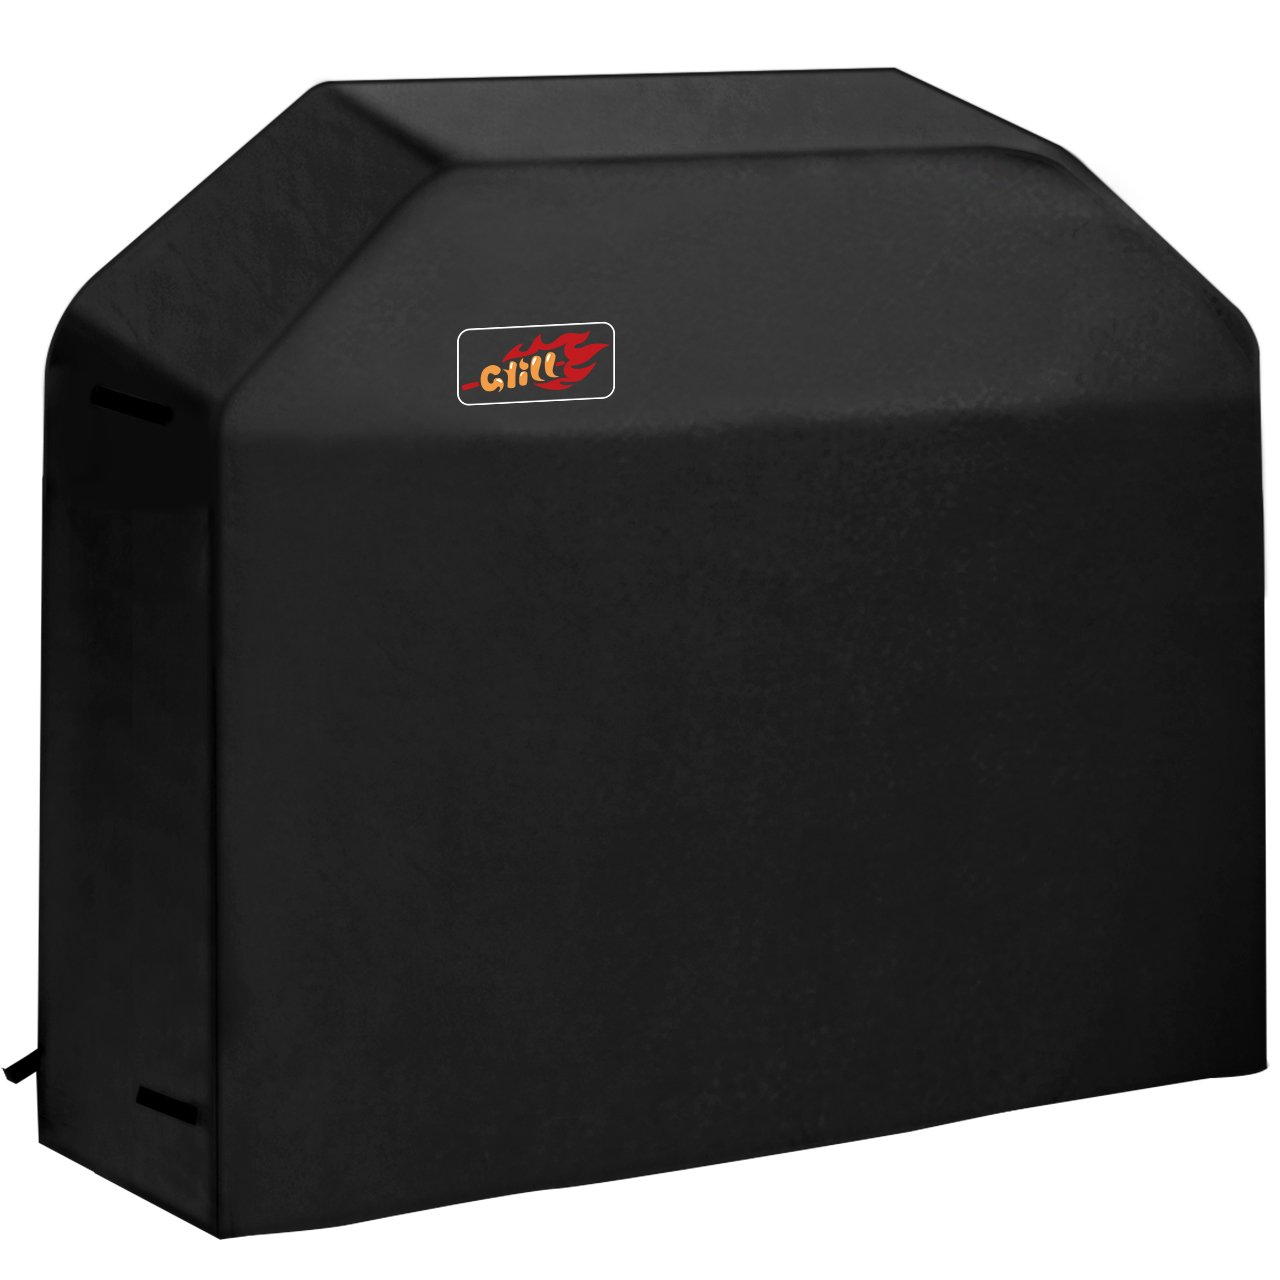 VicTsing Grill Cover, Medium 58-Inch Waterproof BBQ Cover, Heavy Duty Gas Grill Cover for Brinkmann, Char Broil, Holland and Jenn Air by VicTsing